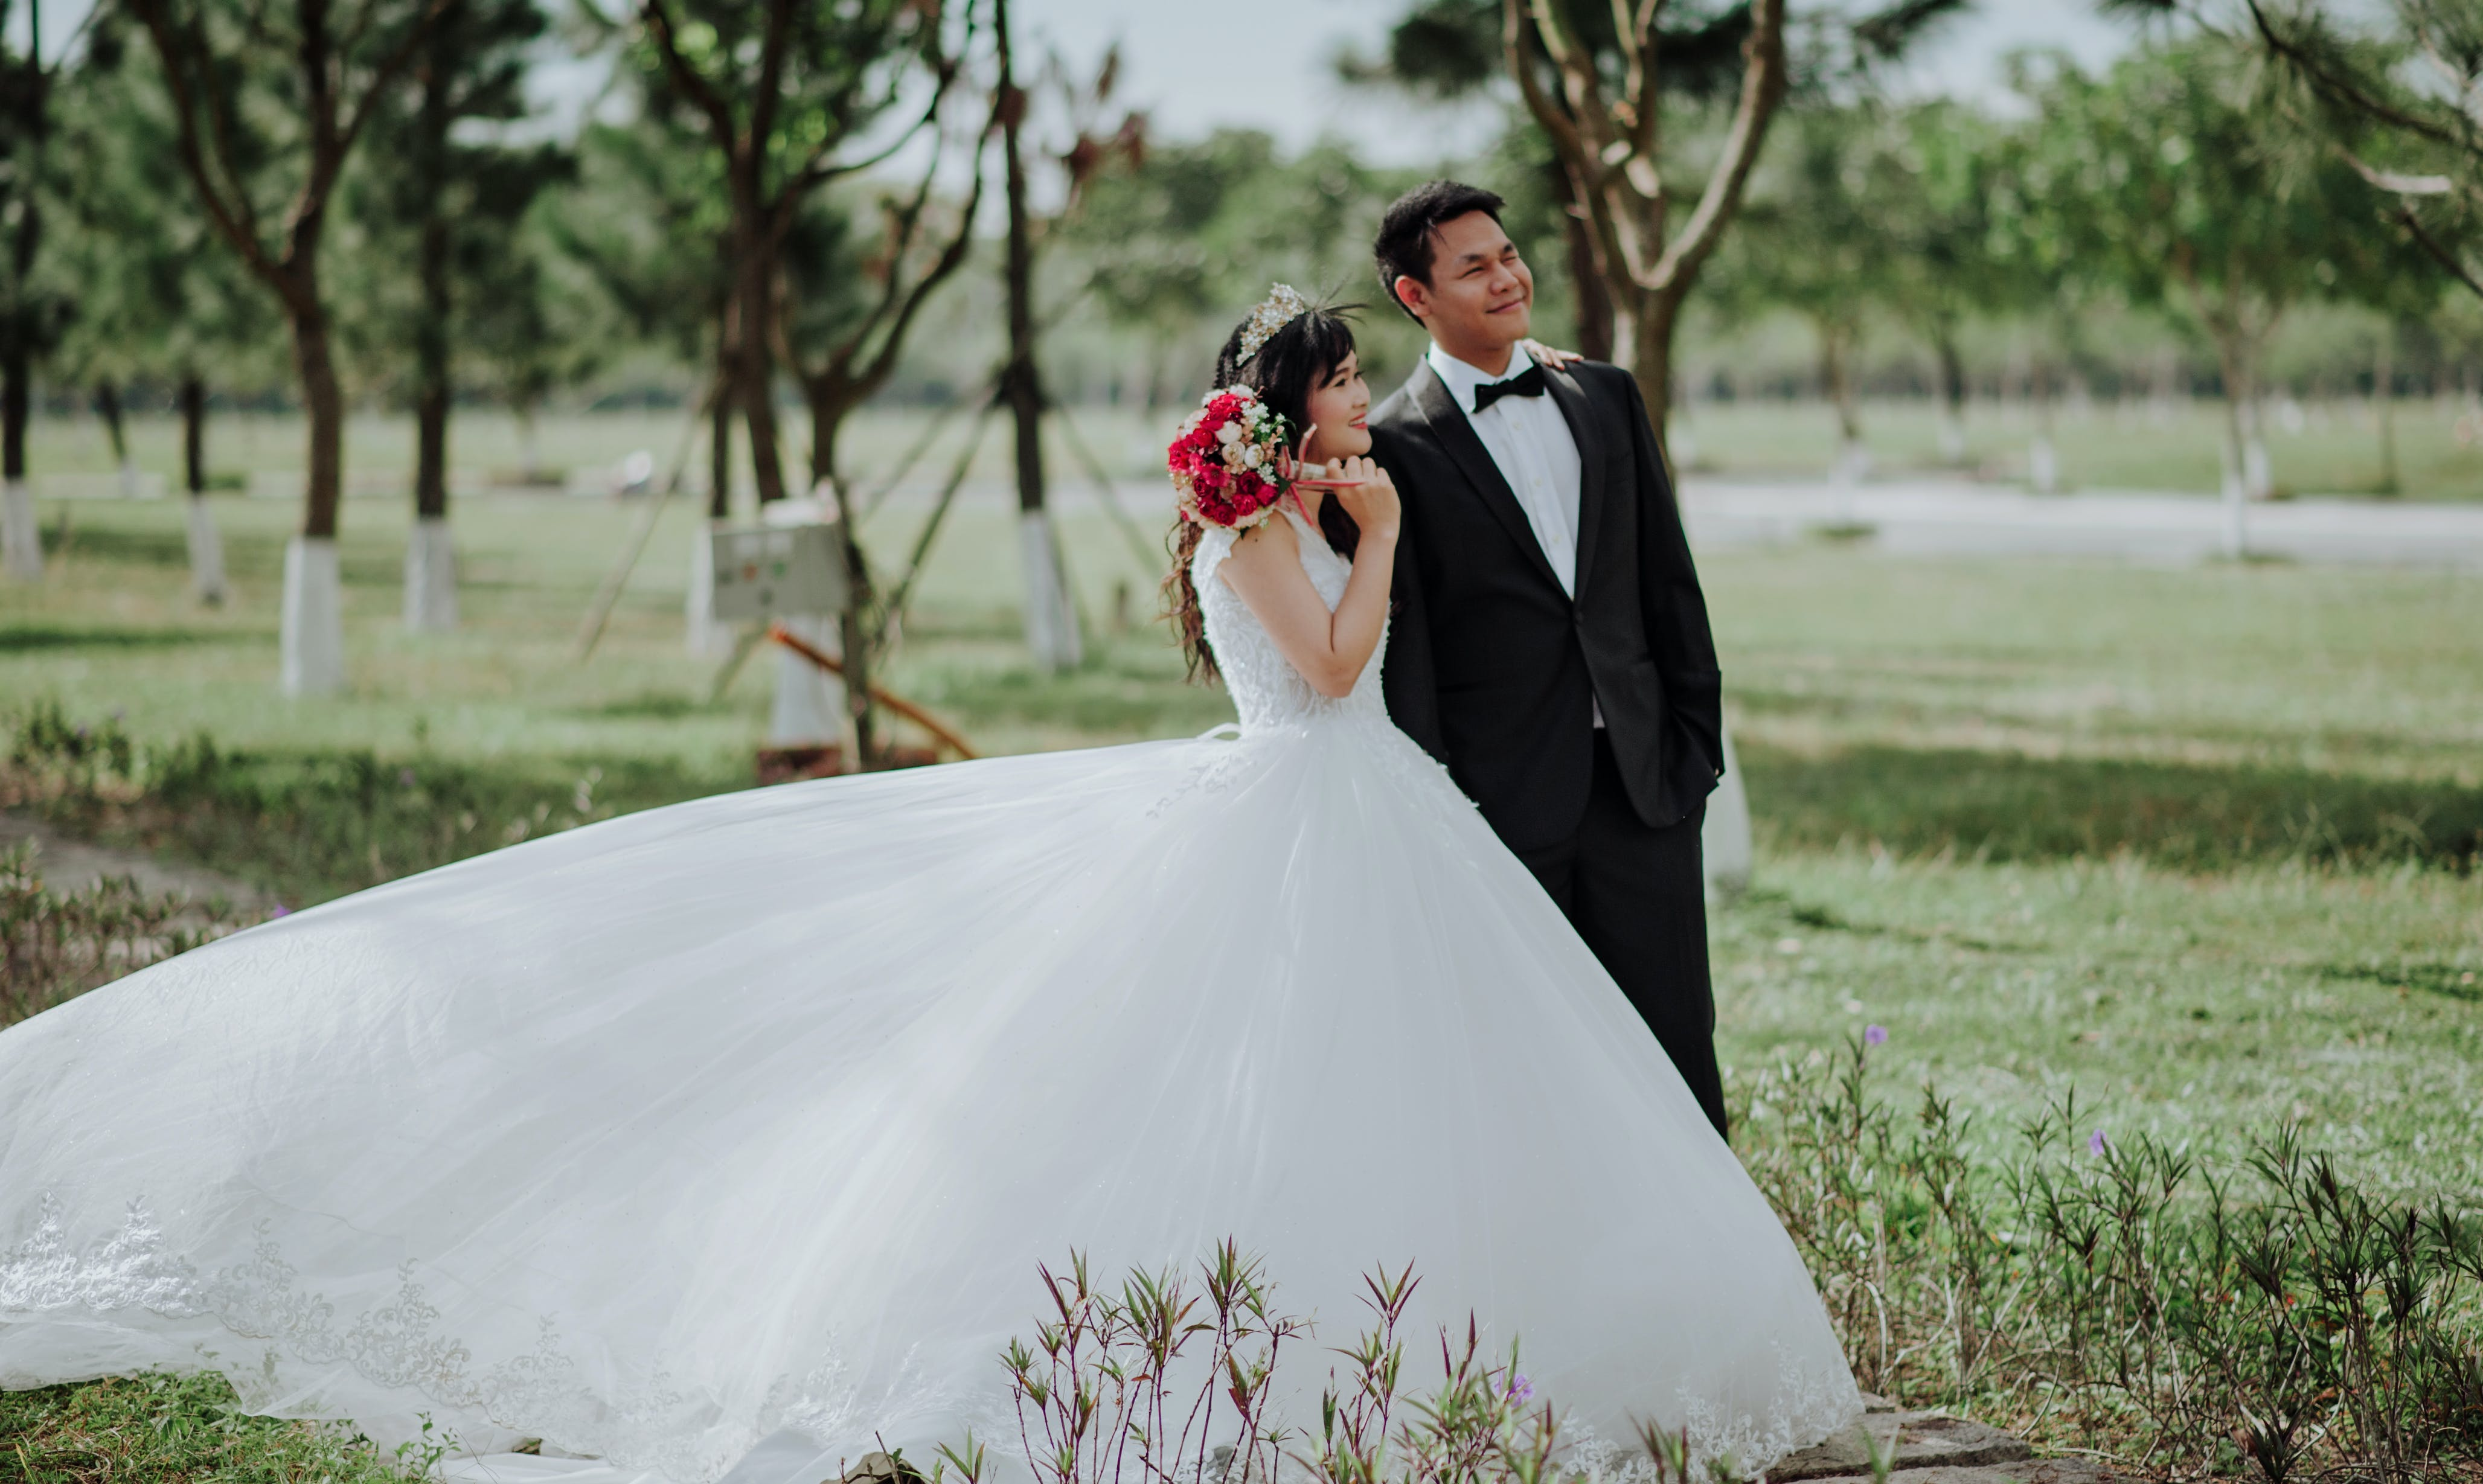 Newly Wed Couple Surrounded by Trees